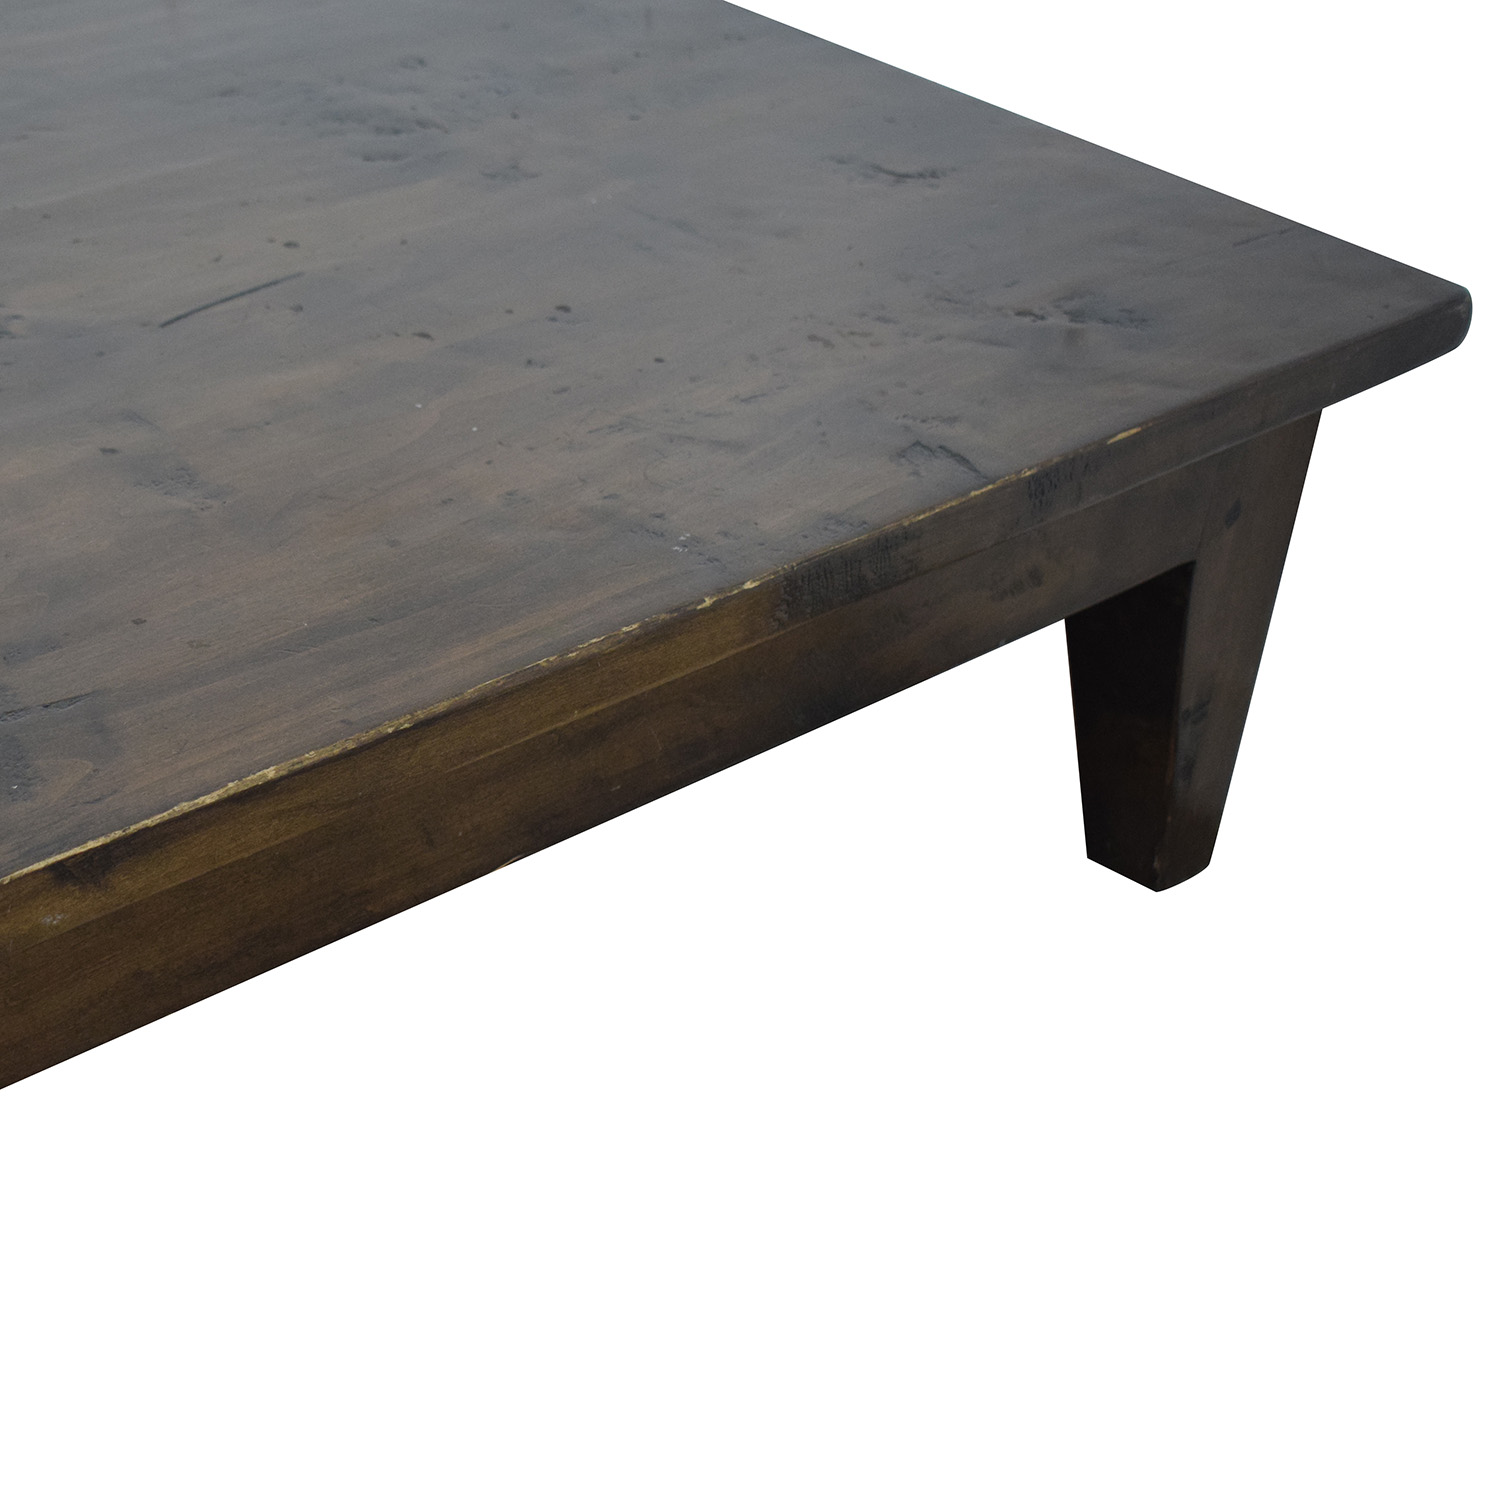 Vintage Single Drawer Low Profile Coffee Table for sale